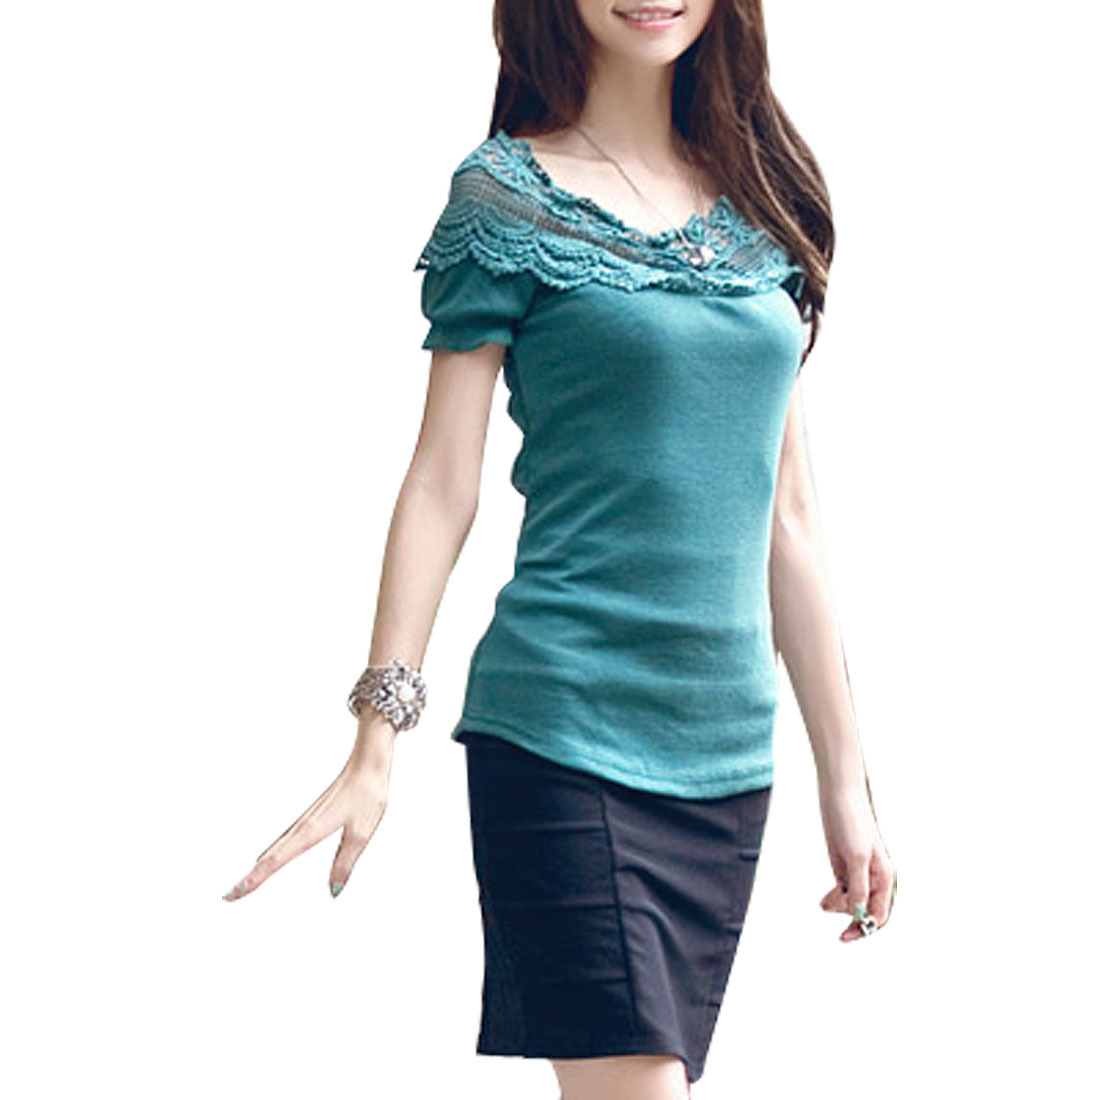 Woman Crochet Floral Neckline Boat Neck Short Sleeve Green Top XS